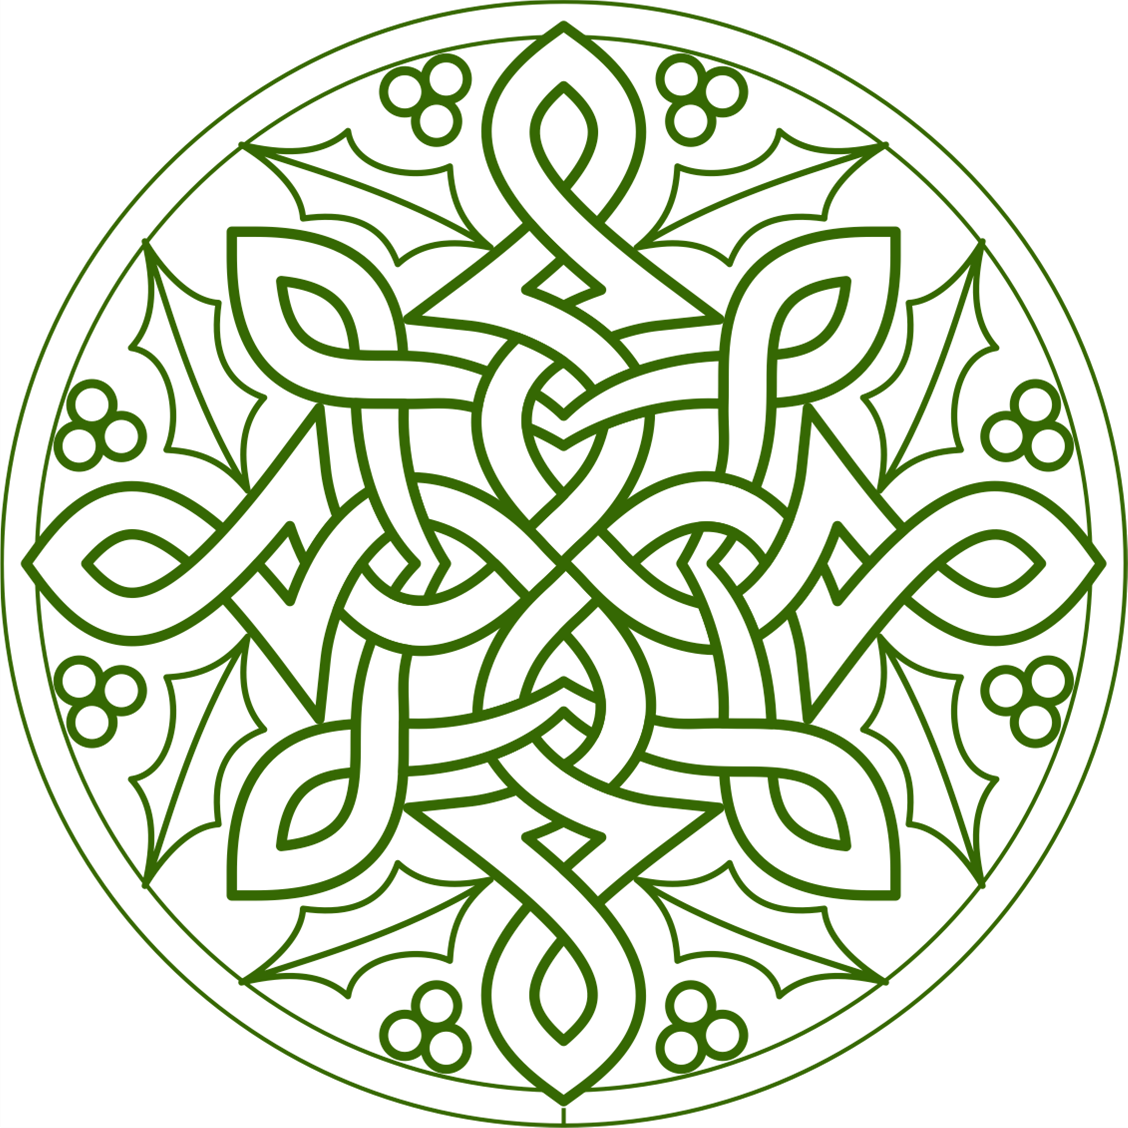 Reflection on Celtic Christmas